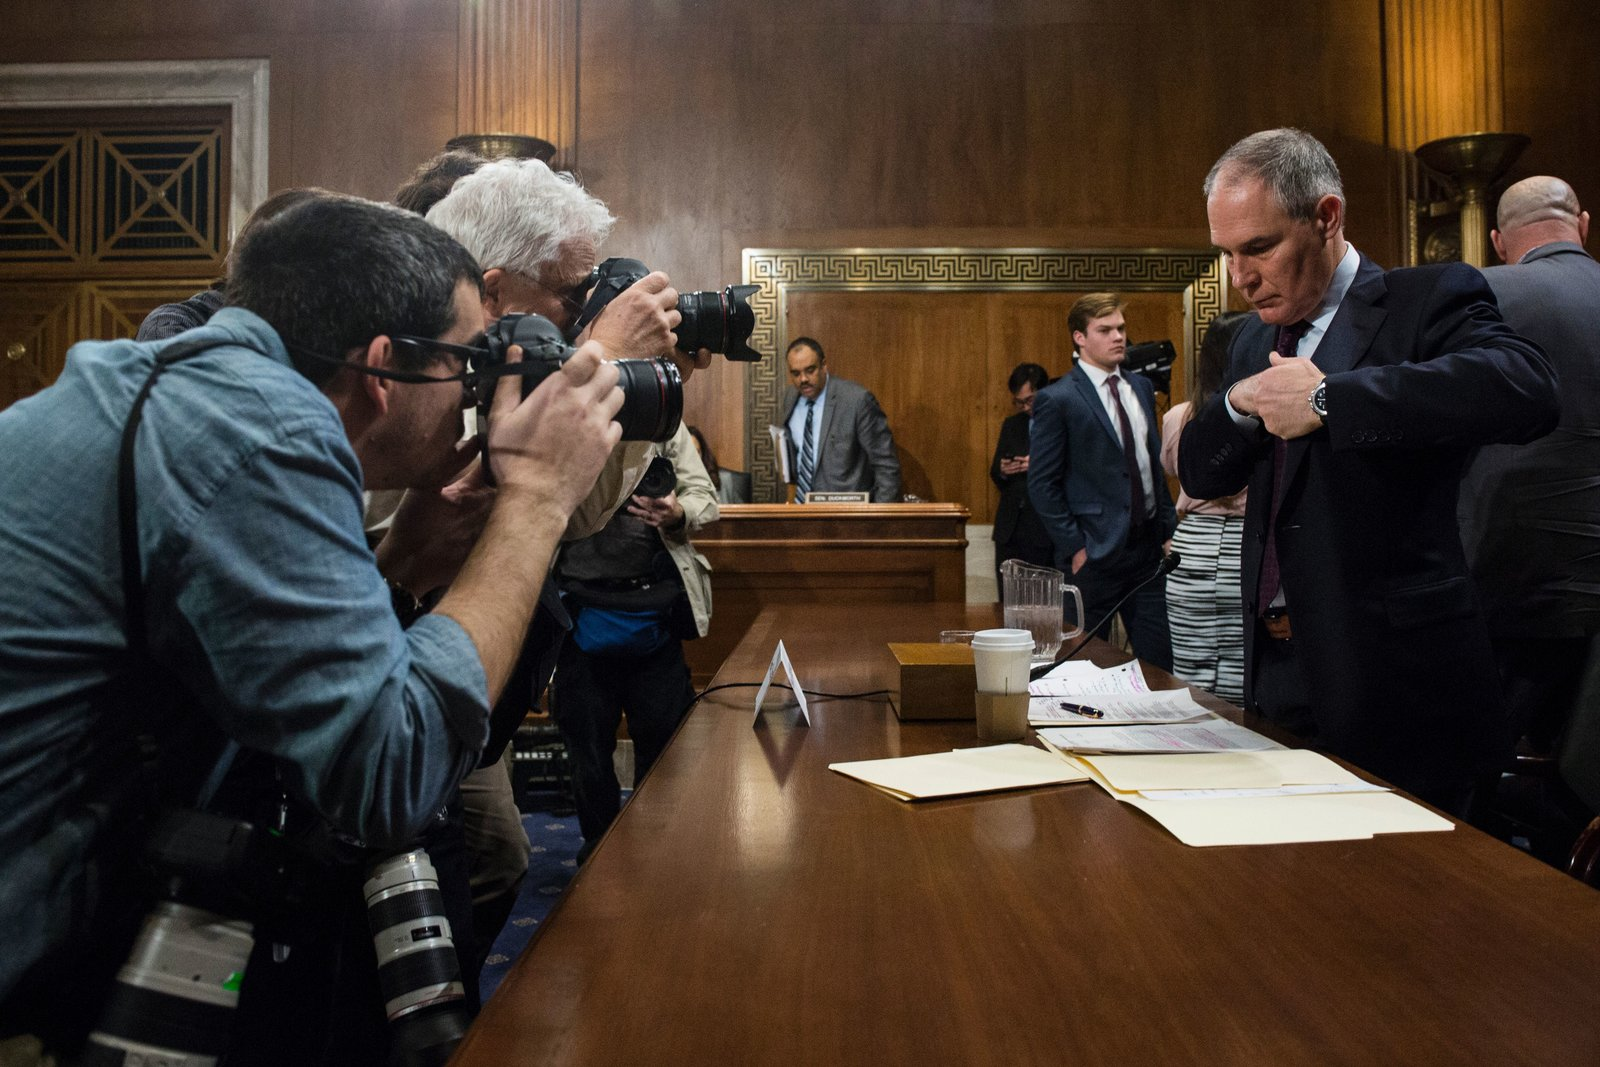 EPA nominee Scott Pruitt faces a lawsuit over communications with fossil fuel companies